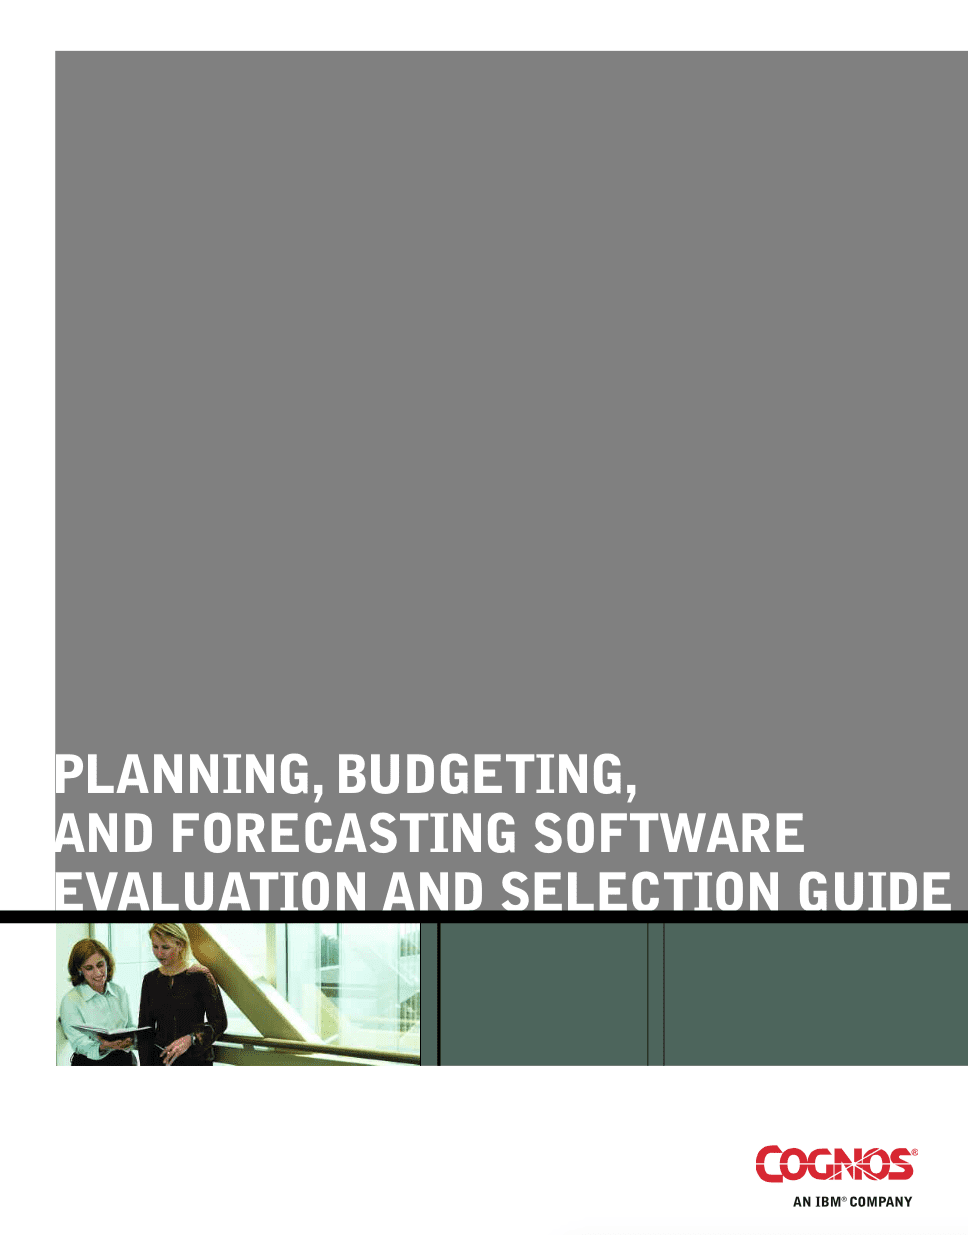 planning, budgeting and forecasting software evaluation and selection guide